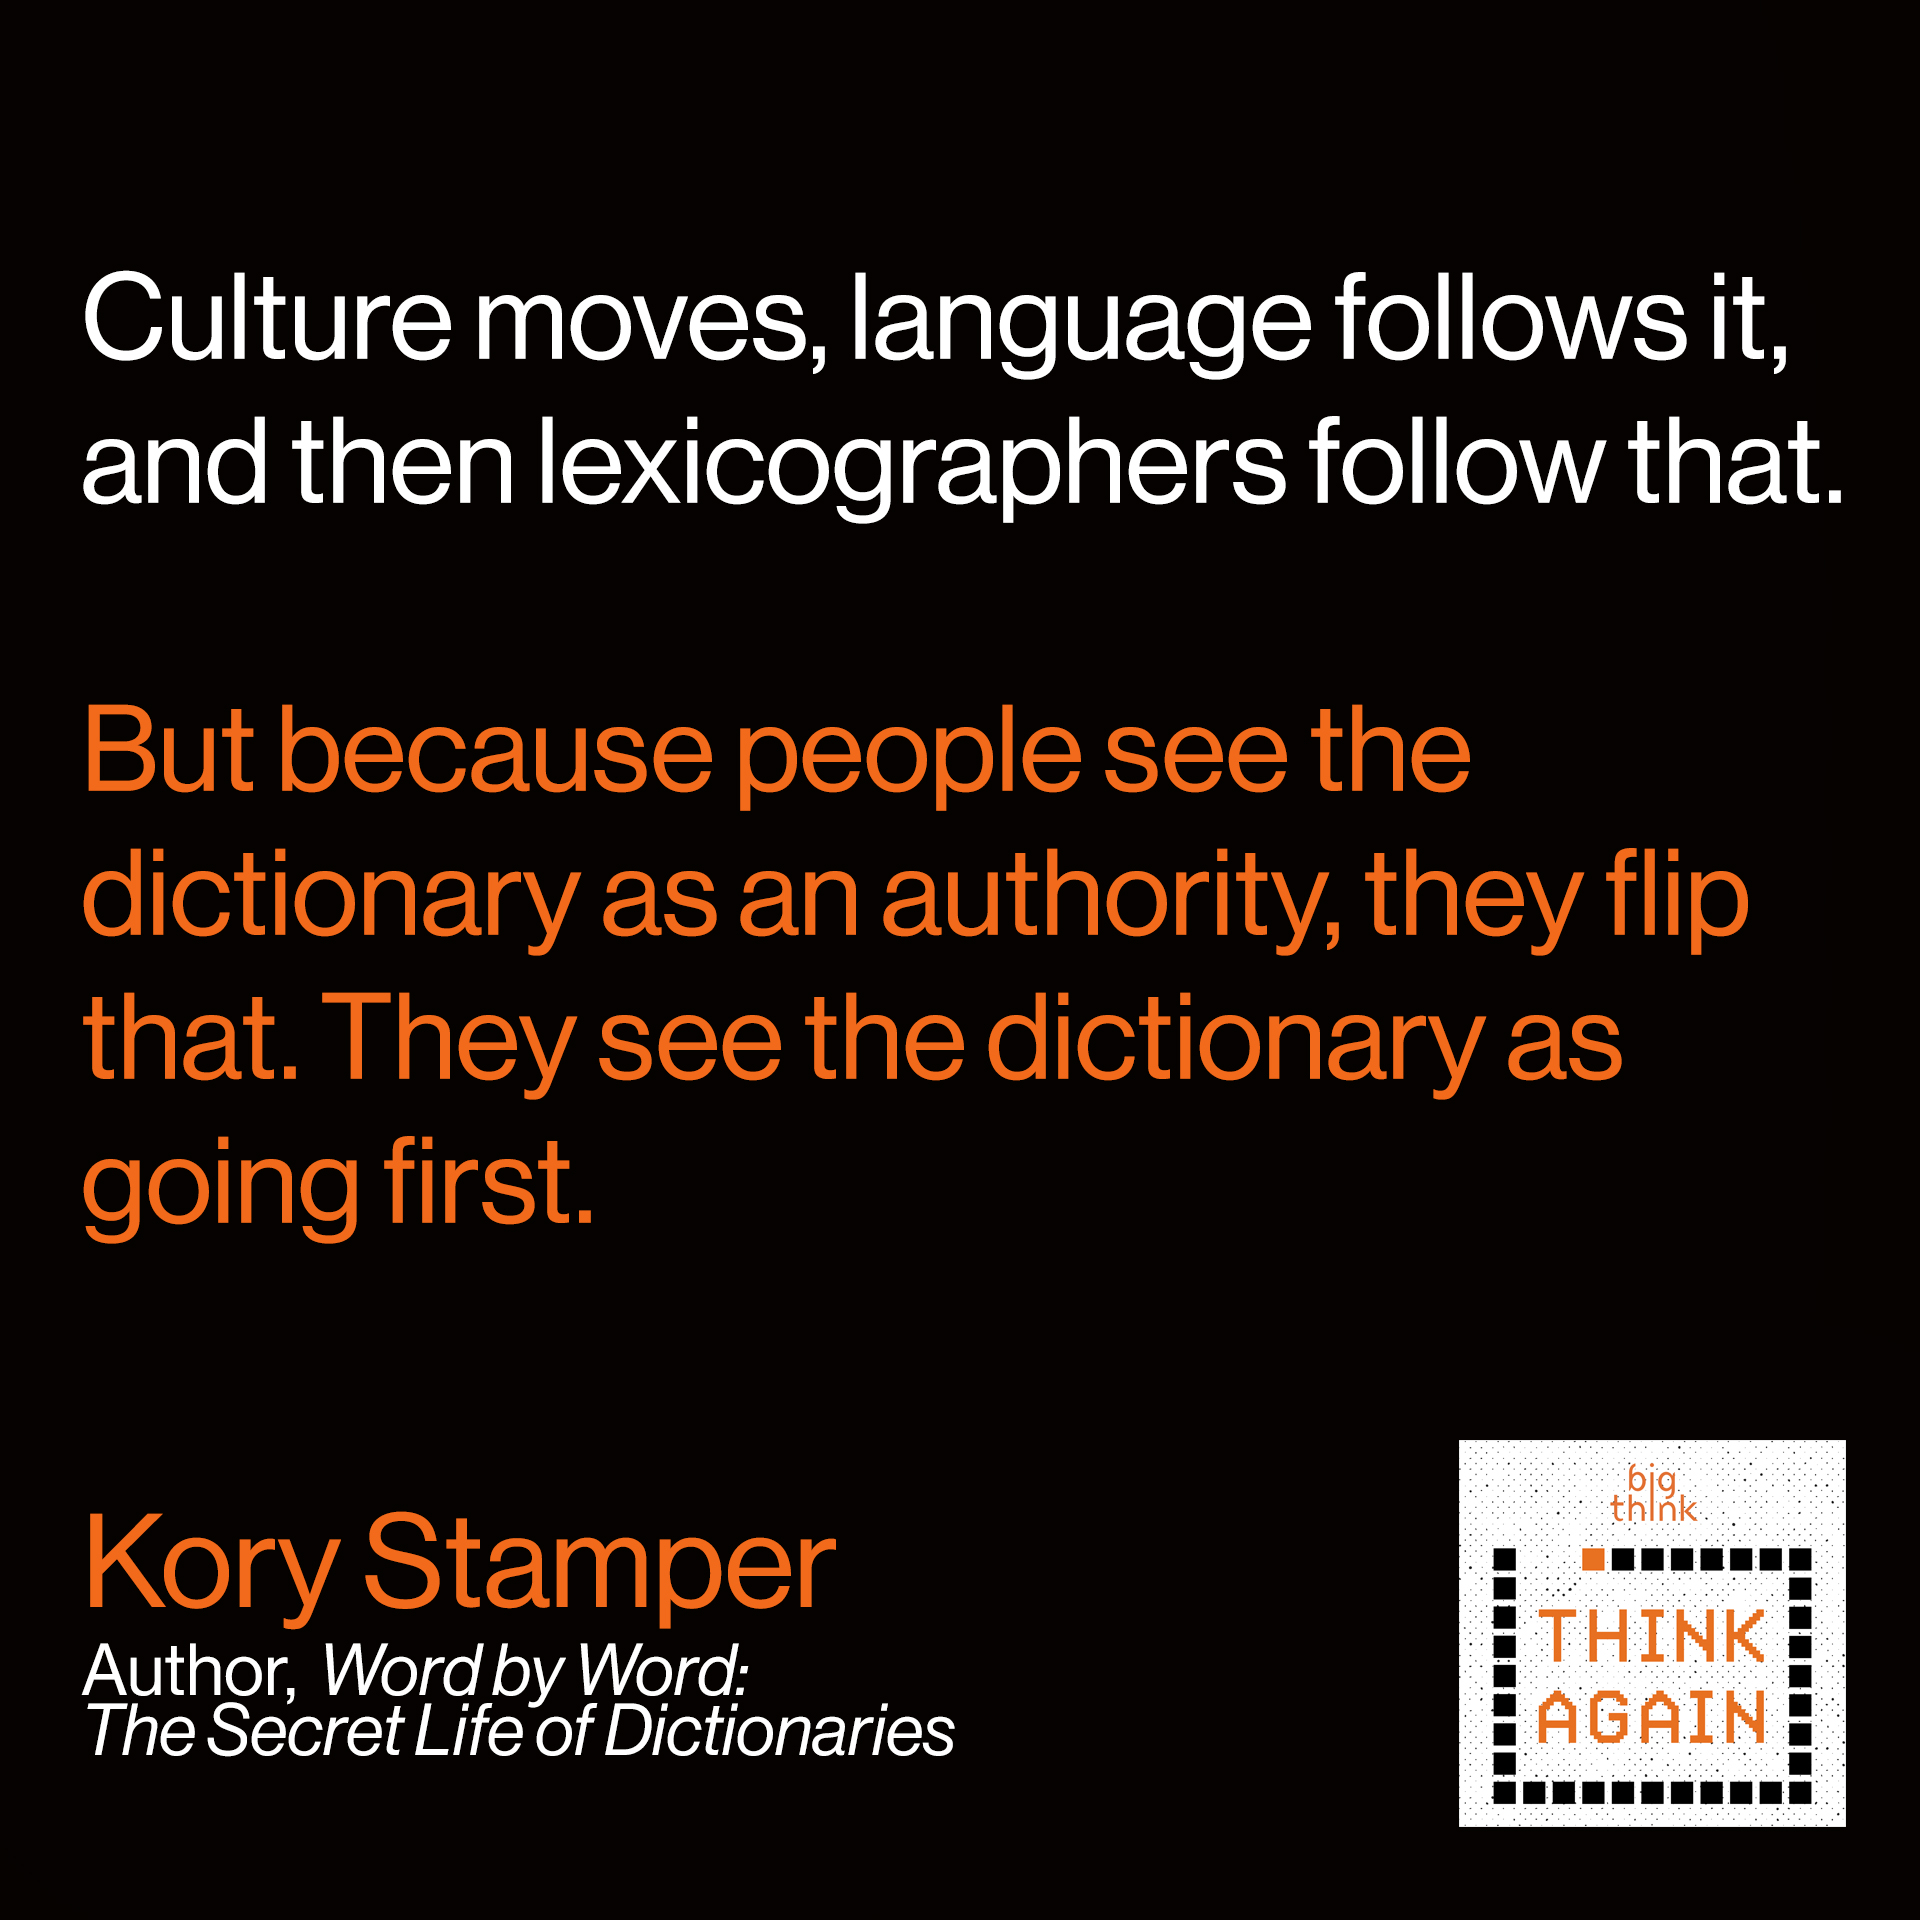 Kory Stamper Quote: Culture moves, language follows it, and then lexicographers follow that. But because people see the dictionary as an authority, they flip that. They see the dictionary as going first